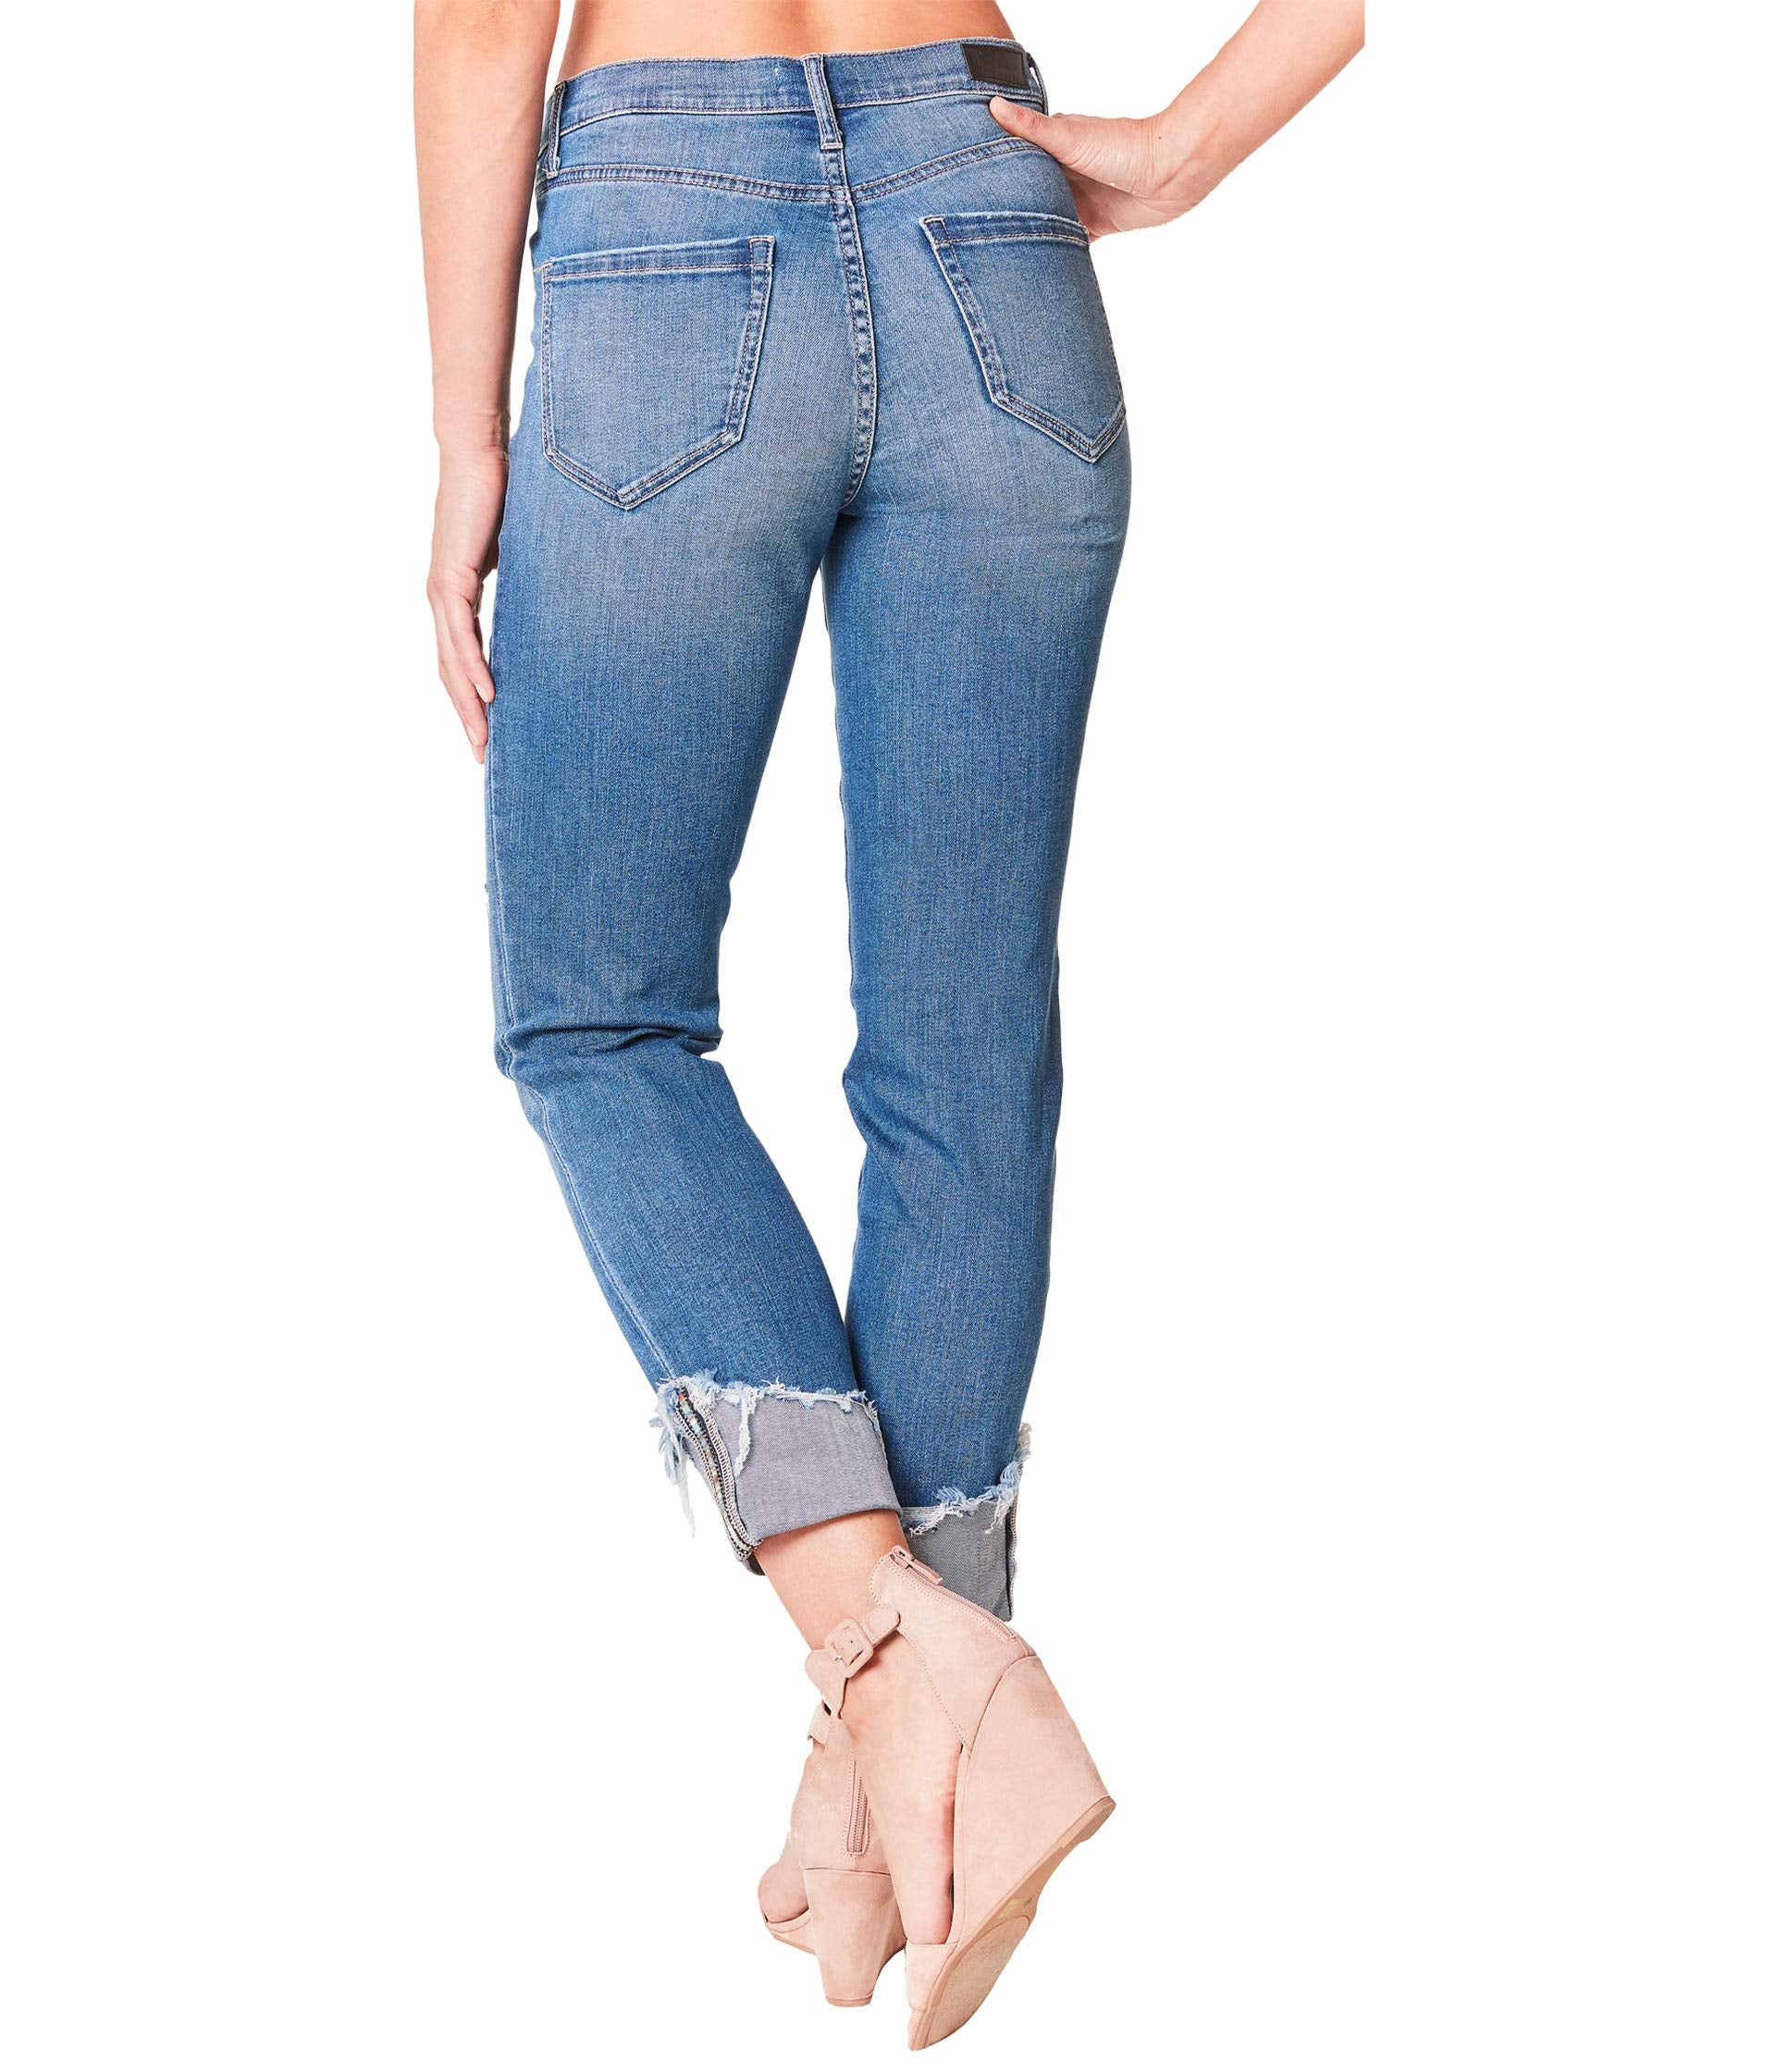 Eco Denim Cuff Jeans in Dark Blue